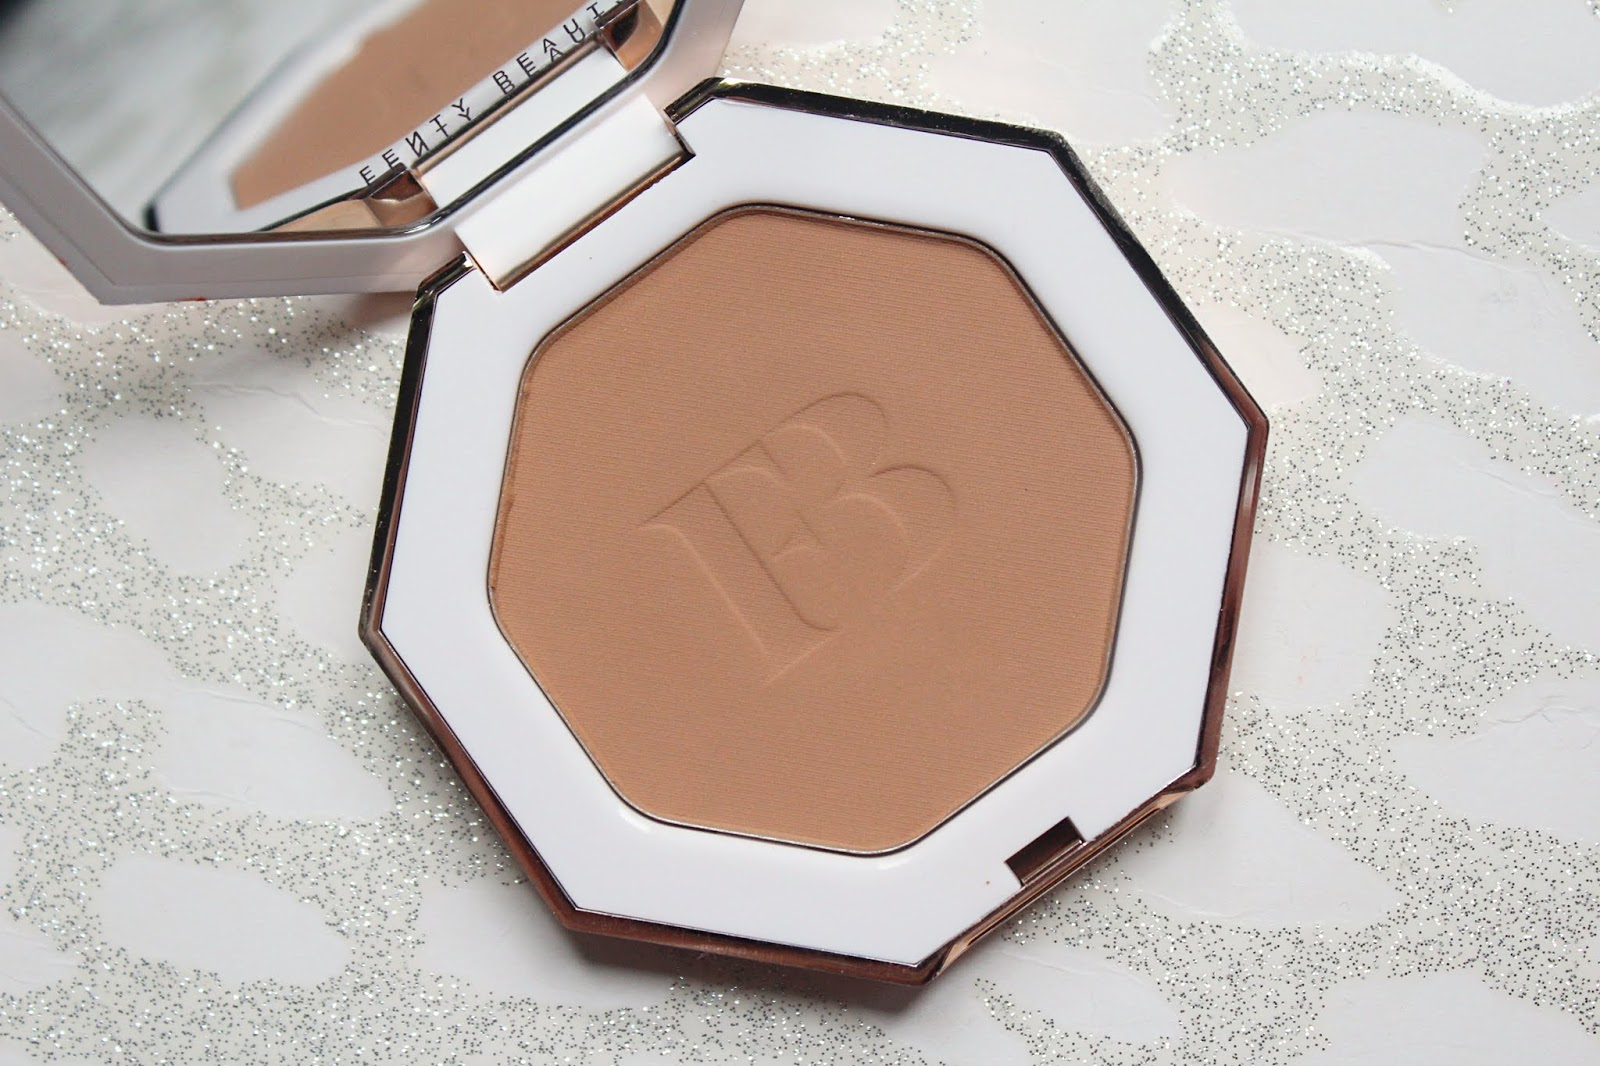 Fenty Beauty Sun Stalk'r Instant Warmth Bronzer Review